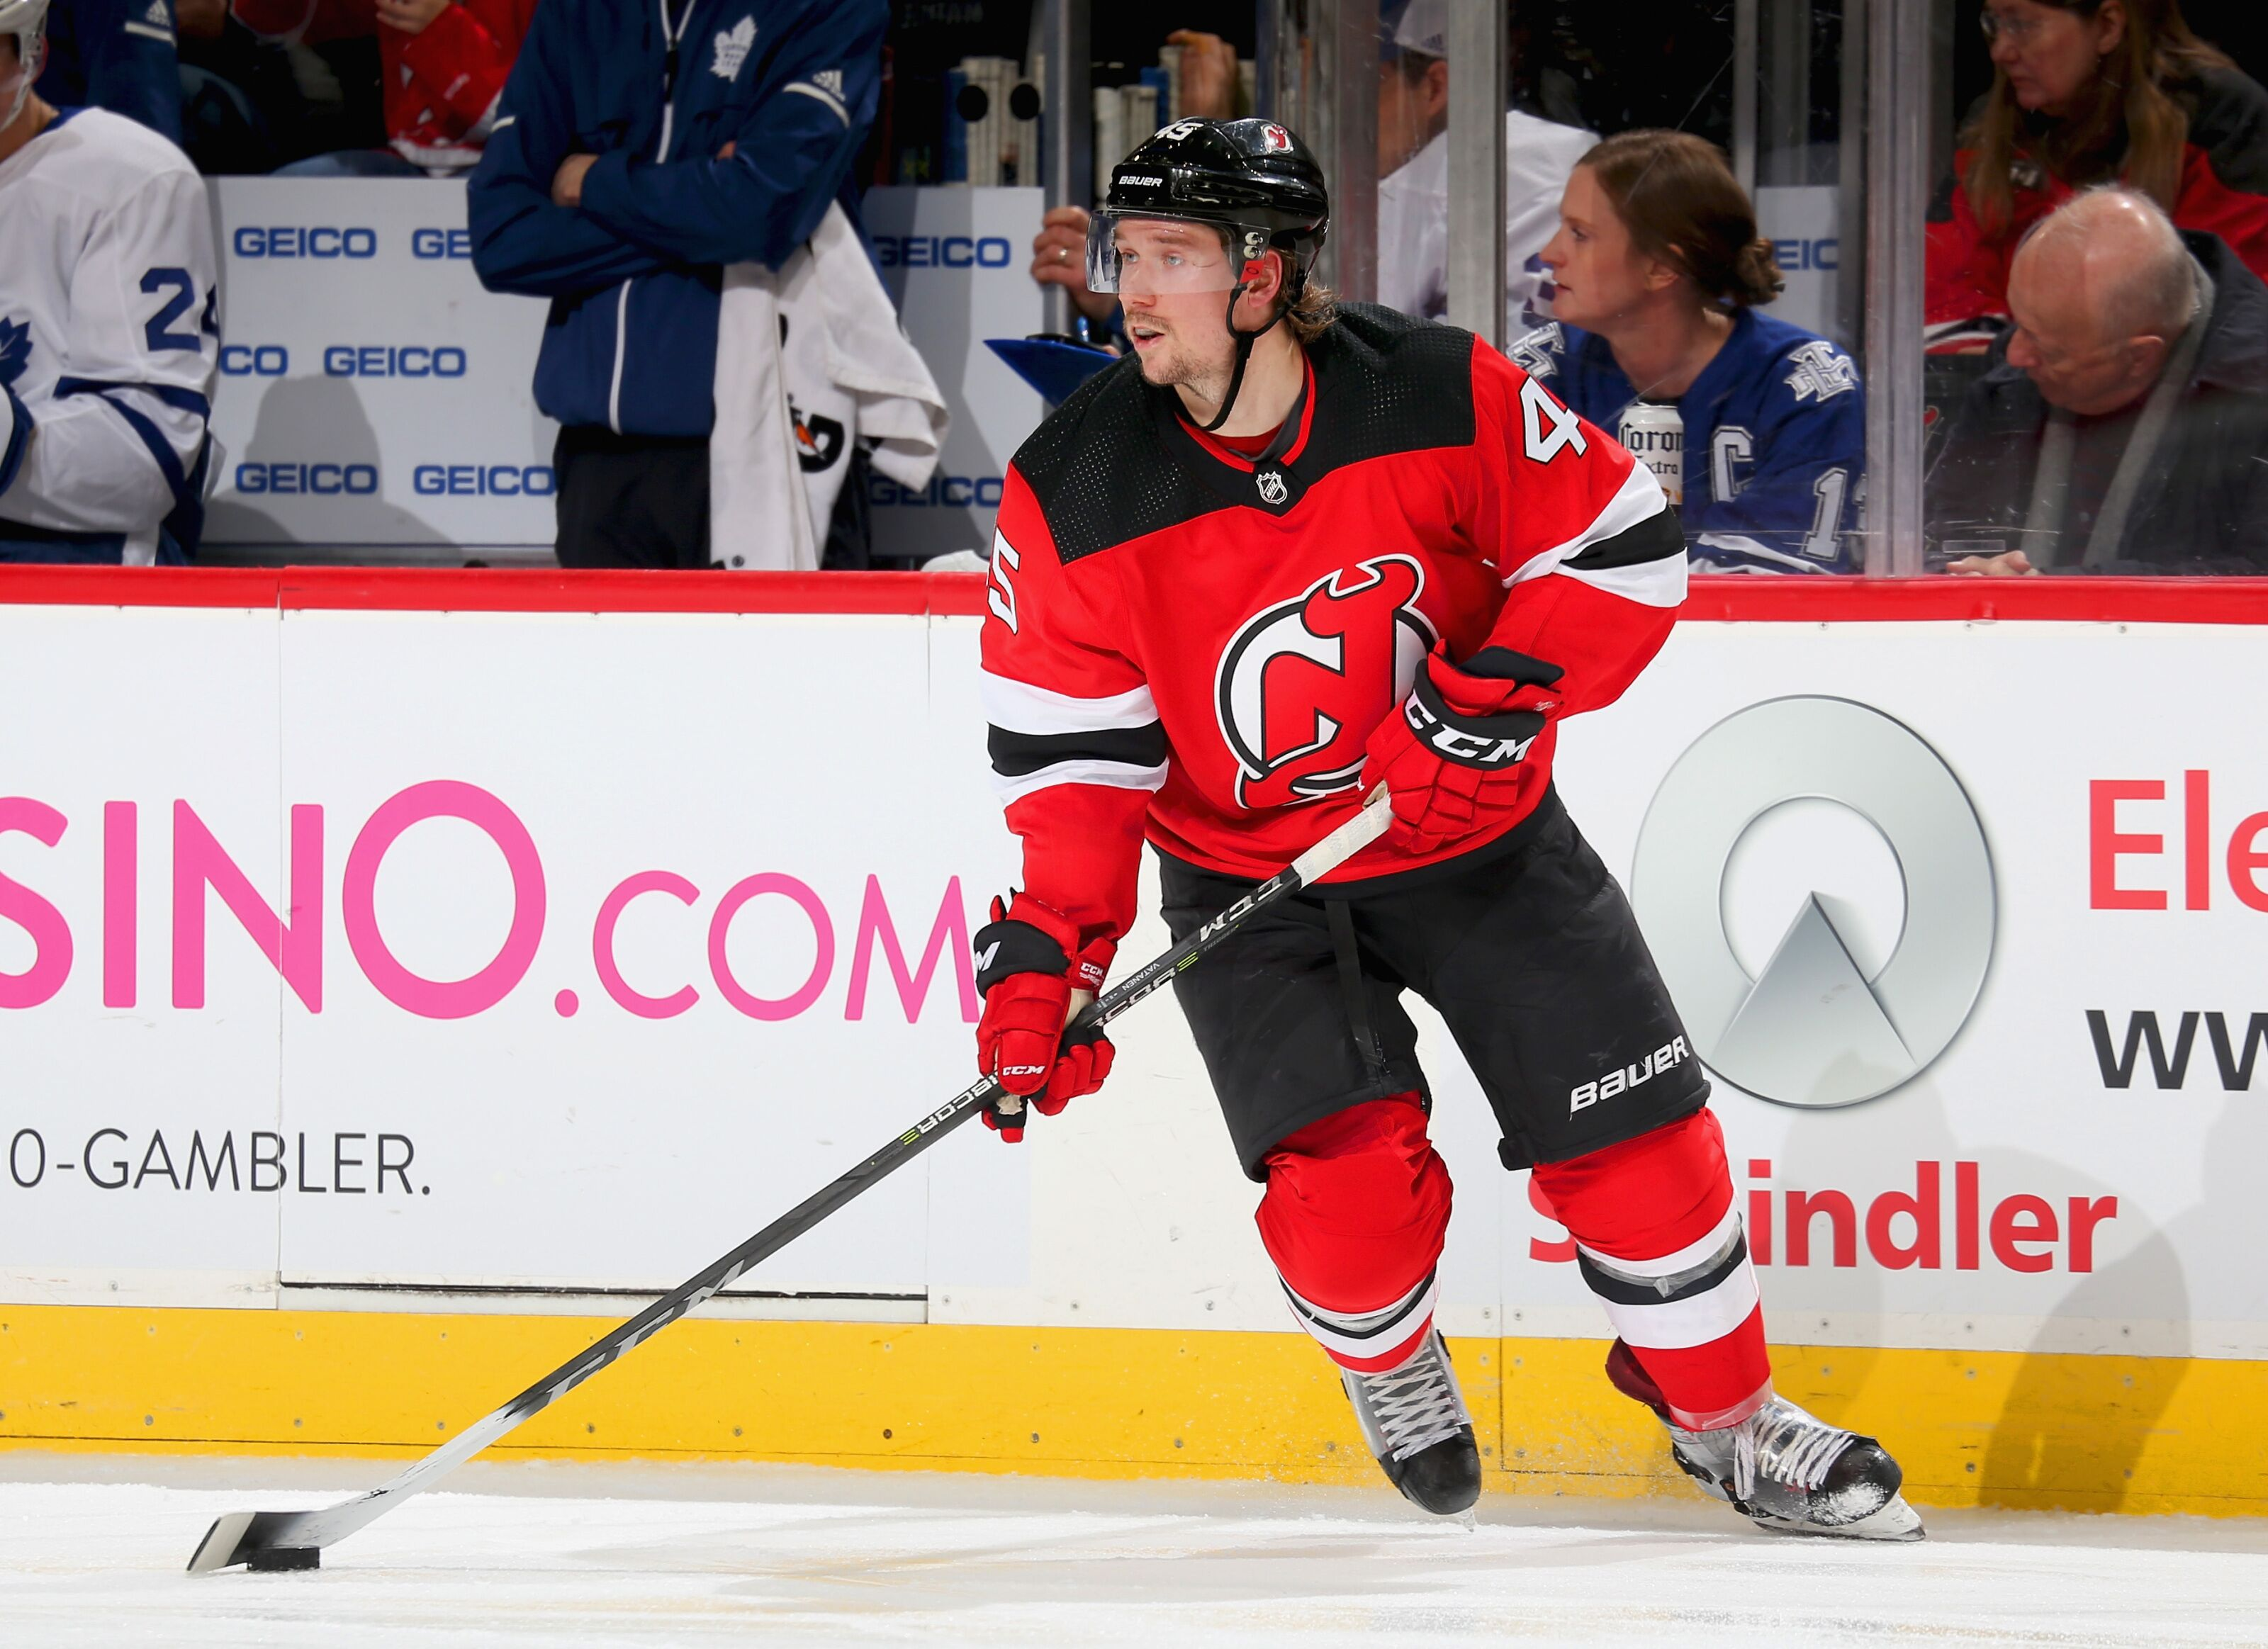 943518678-toronto-maple-leafs-v-new-jersey-devils.jpg